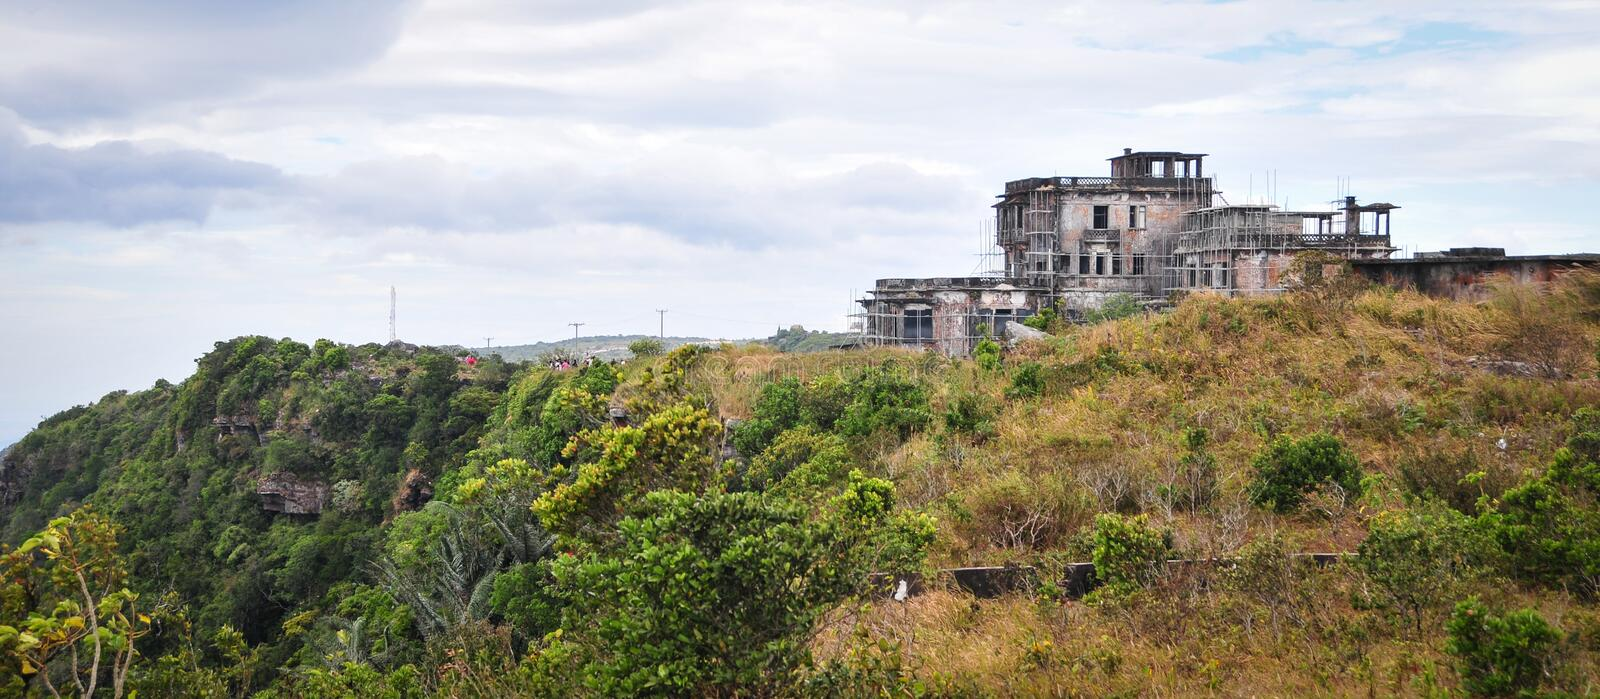 Abandonded hotel on Bokor Hill in Kampot, Cambodia.  stock images